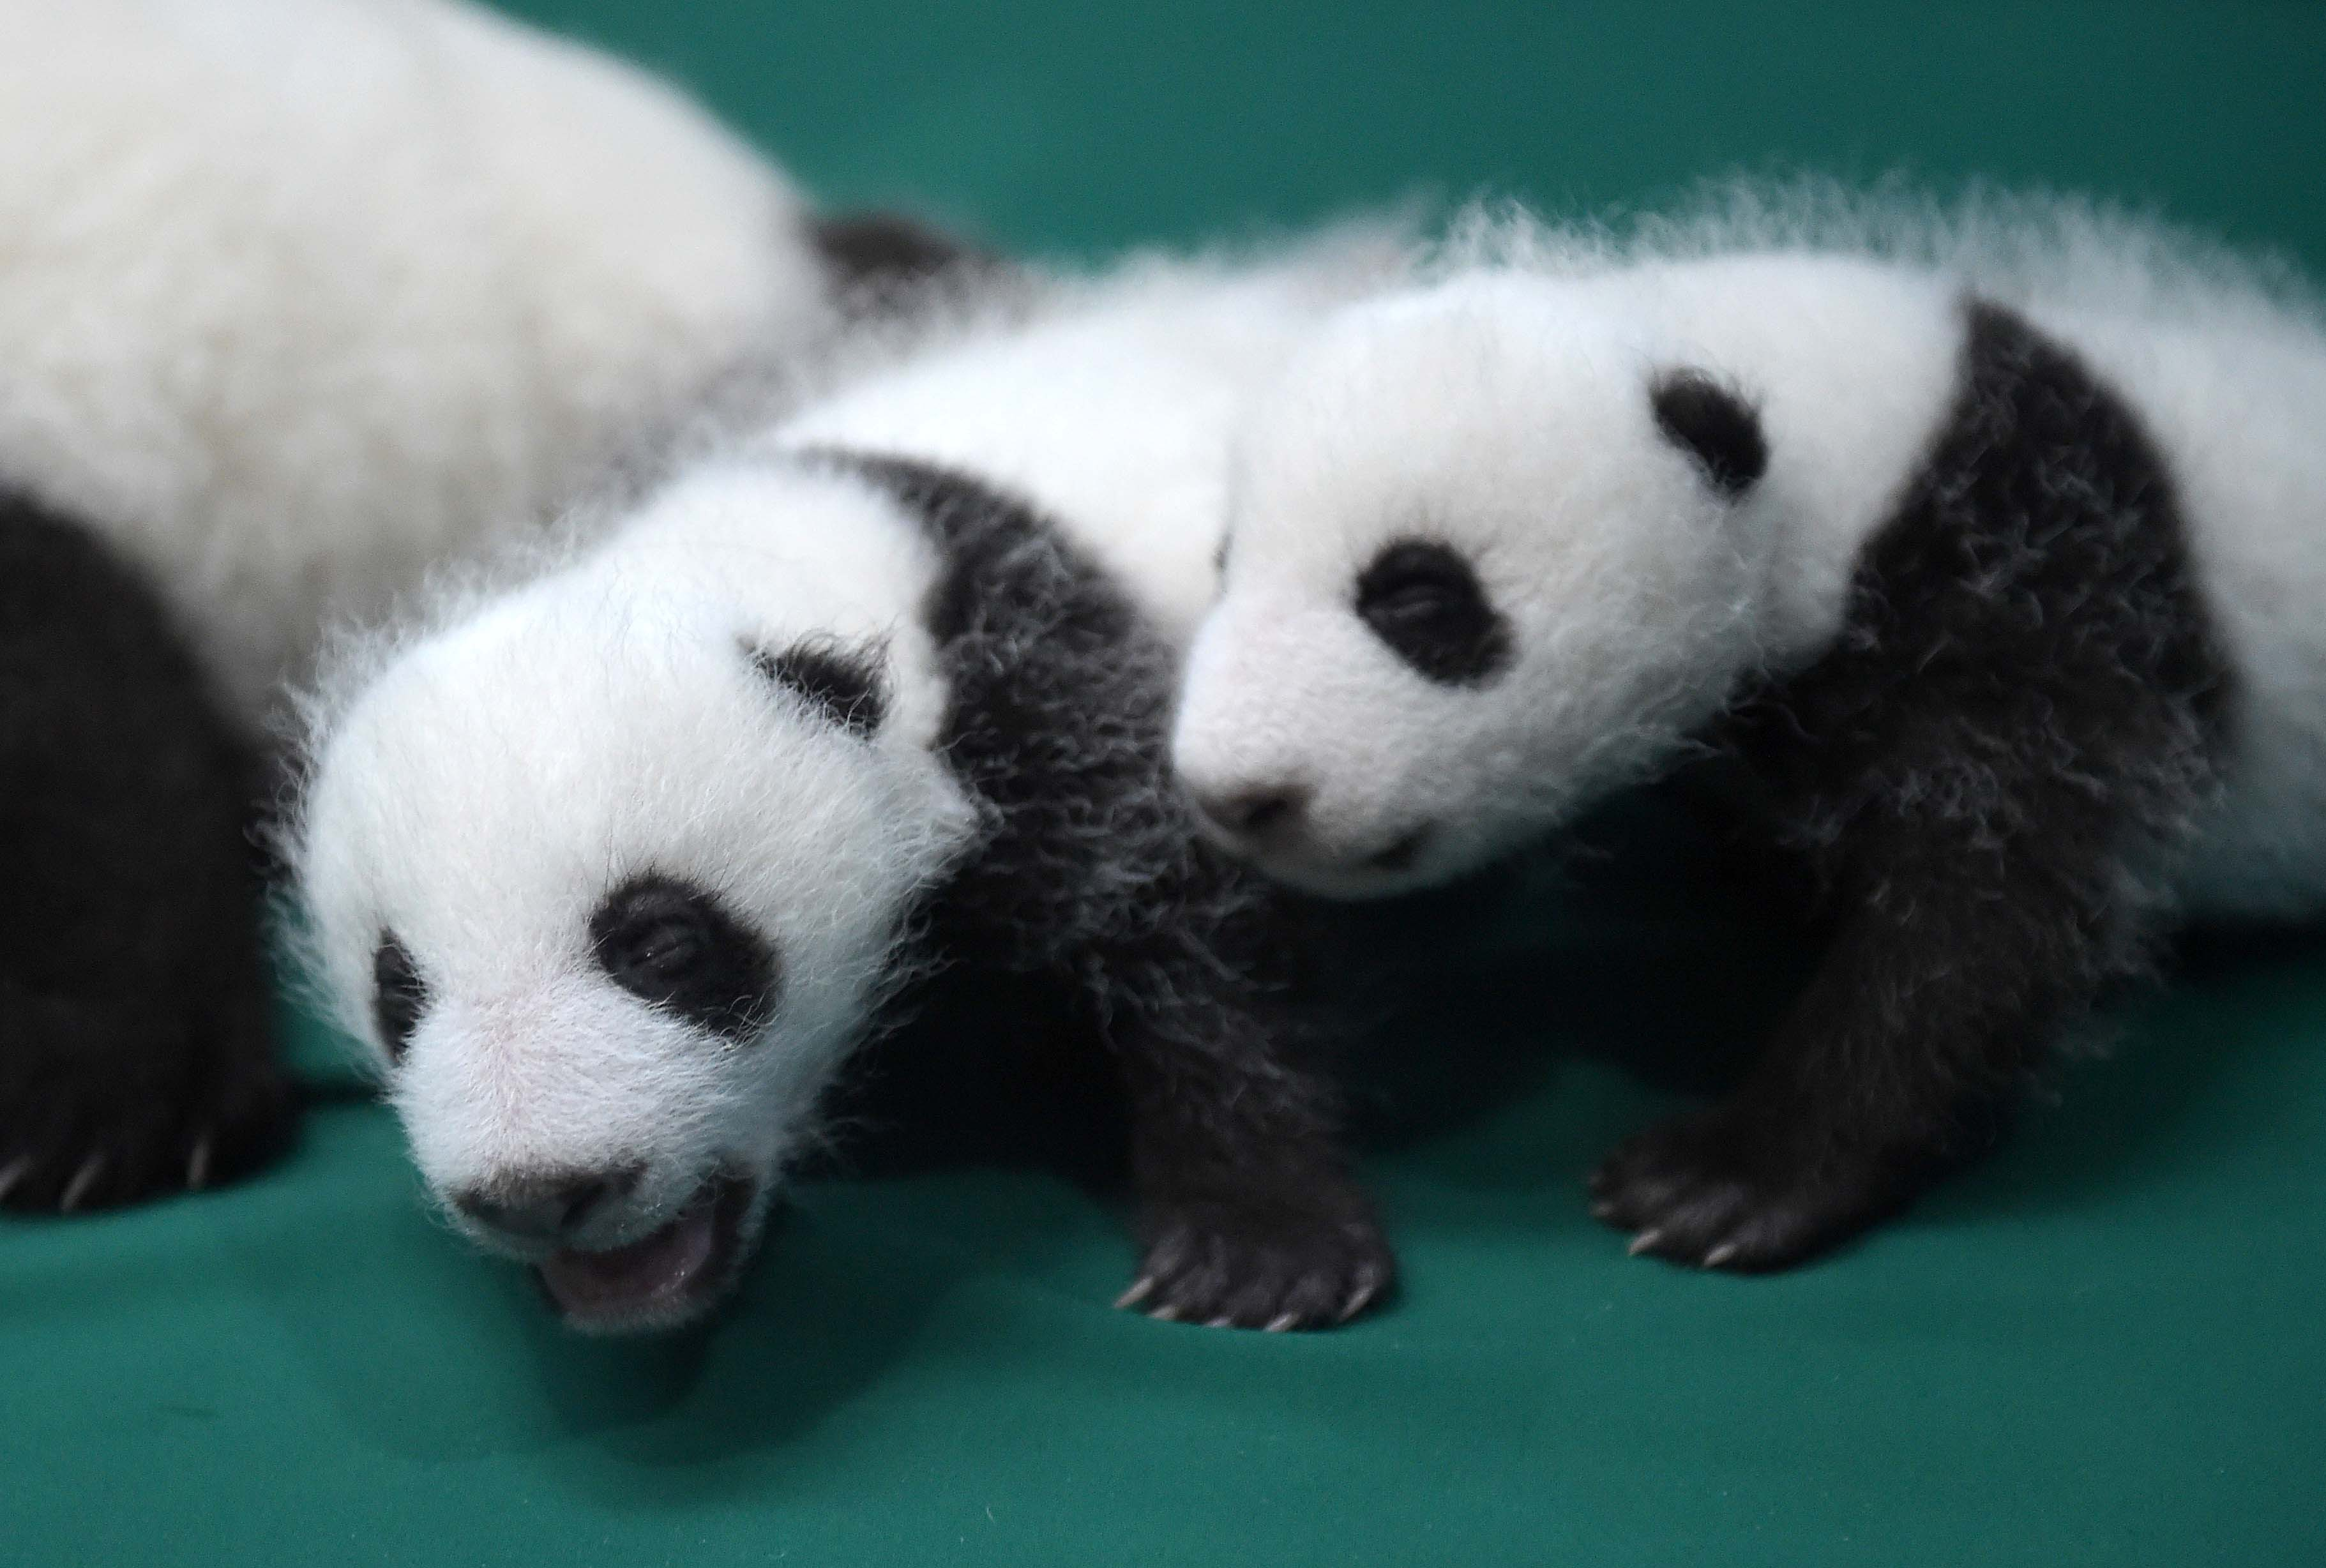 Here's your chance to name a baby panda